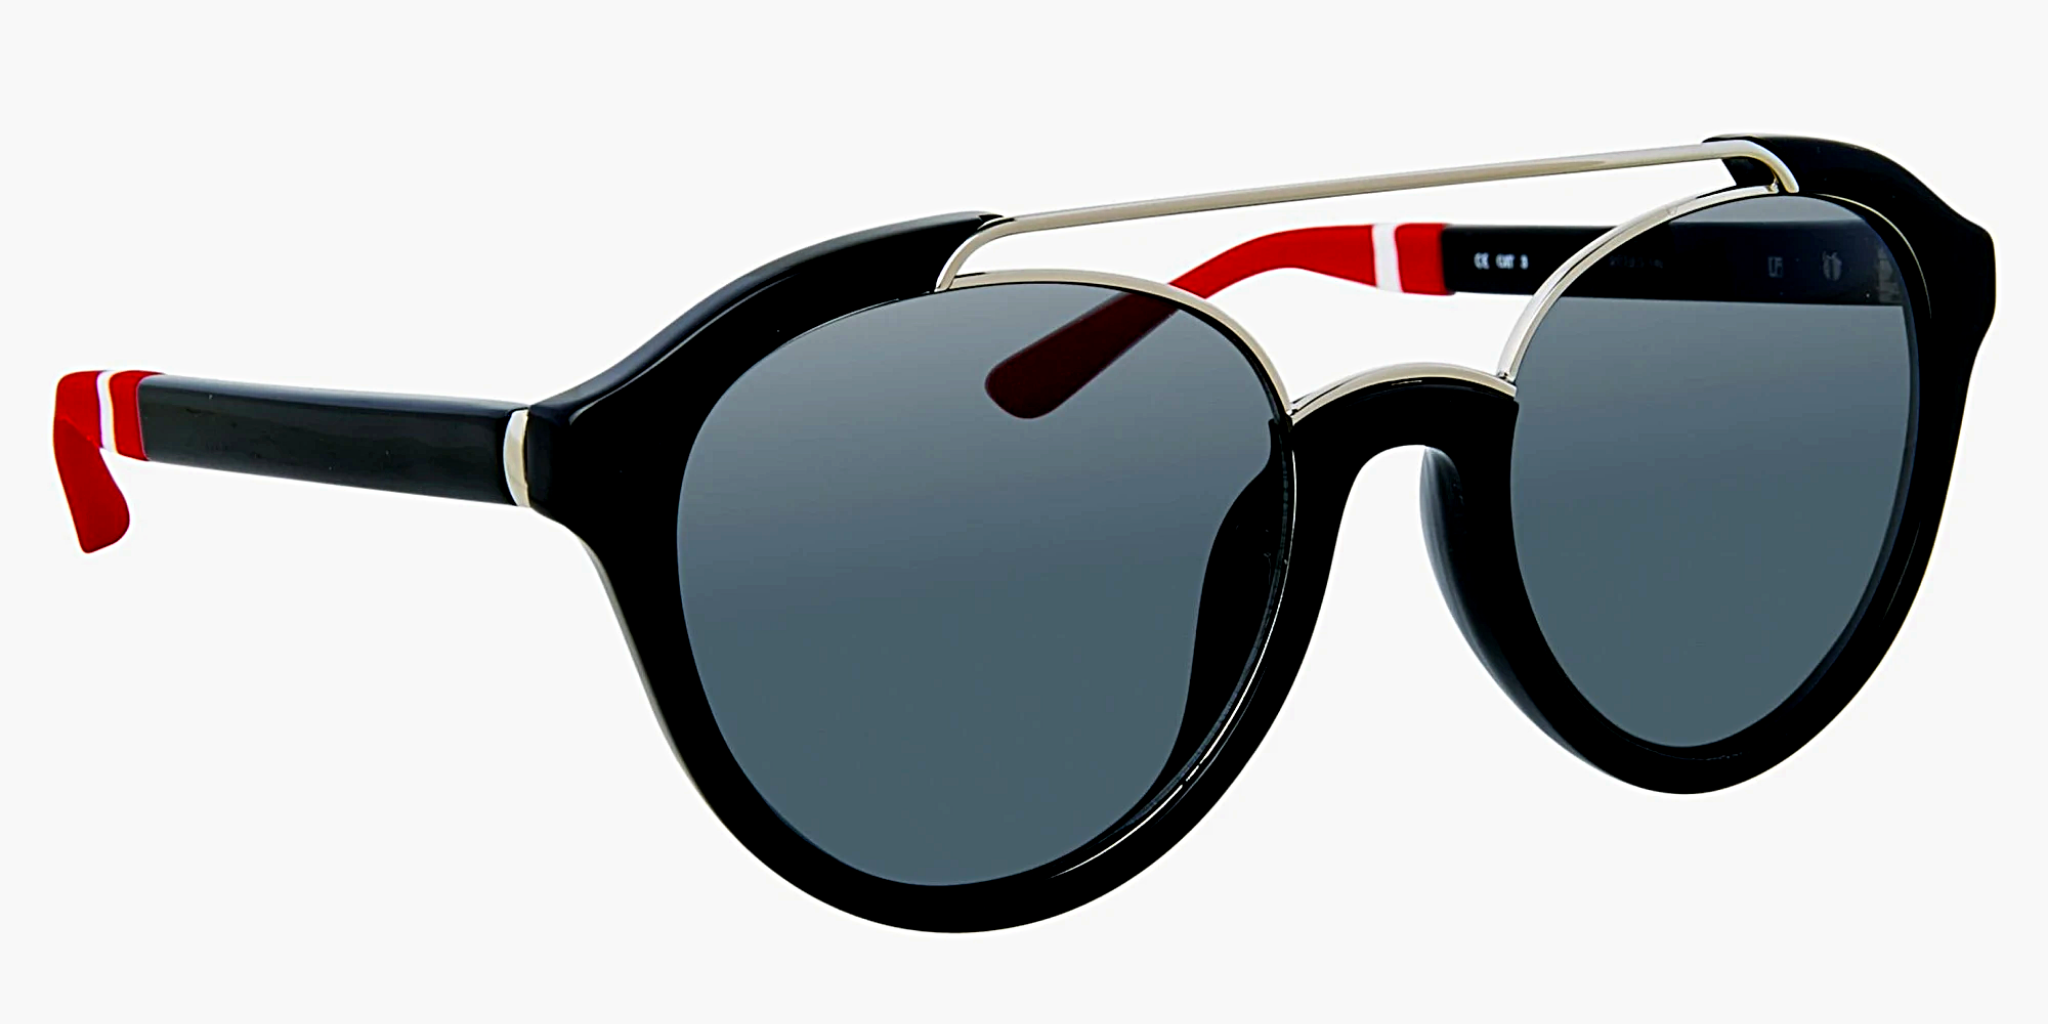 Orlebar Brown Sunglasses Oval Red Black and Grey